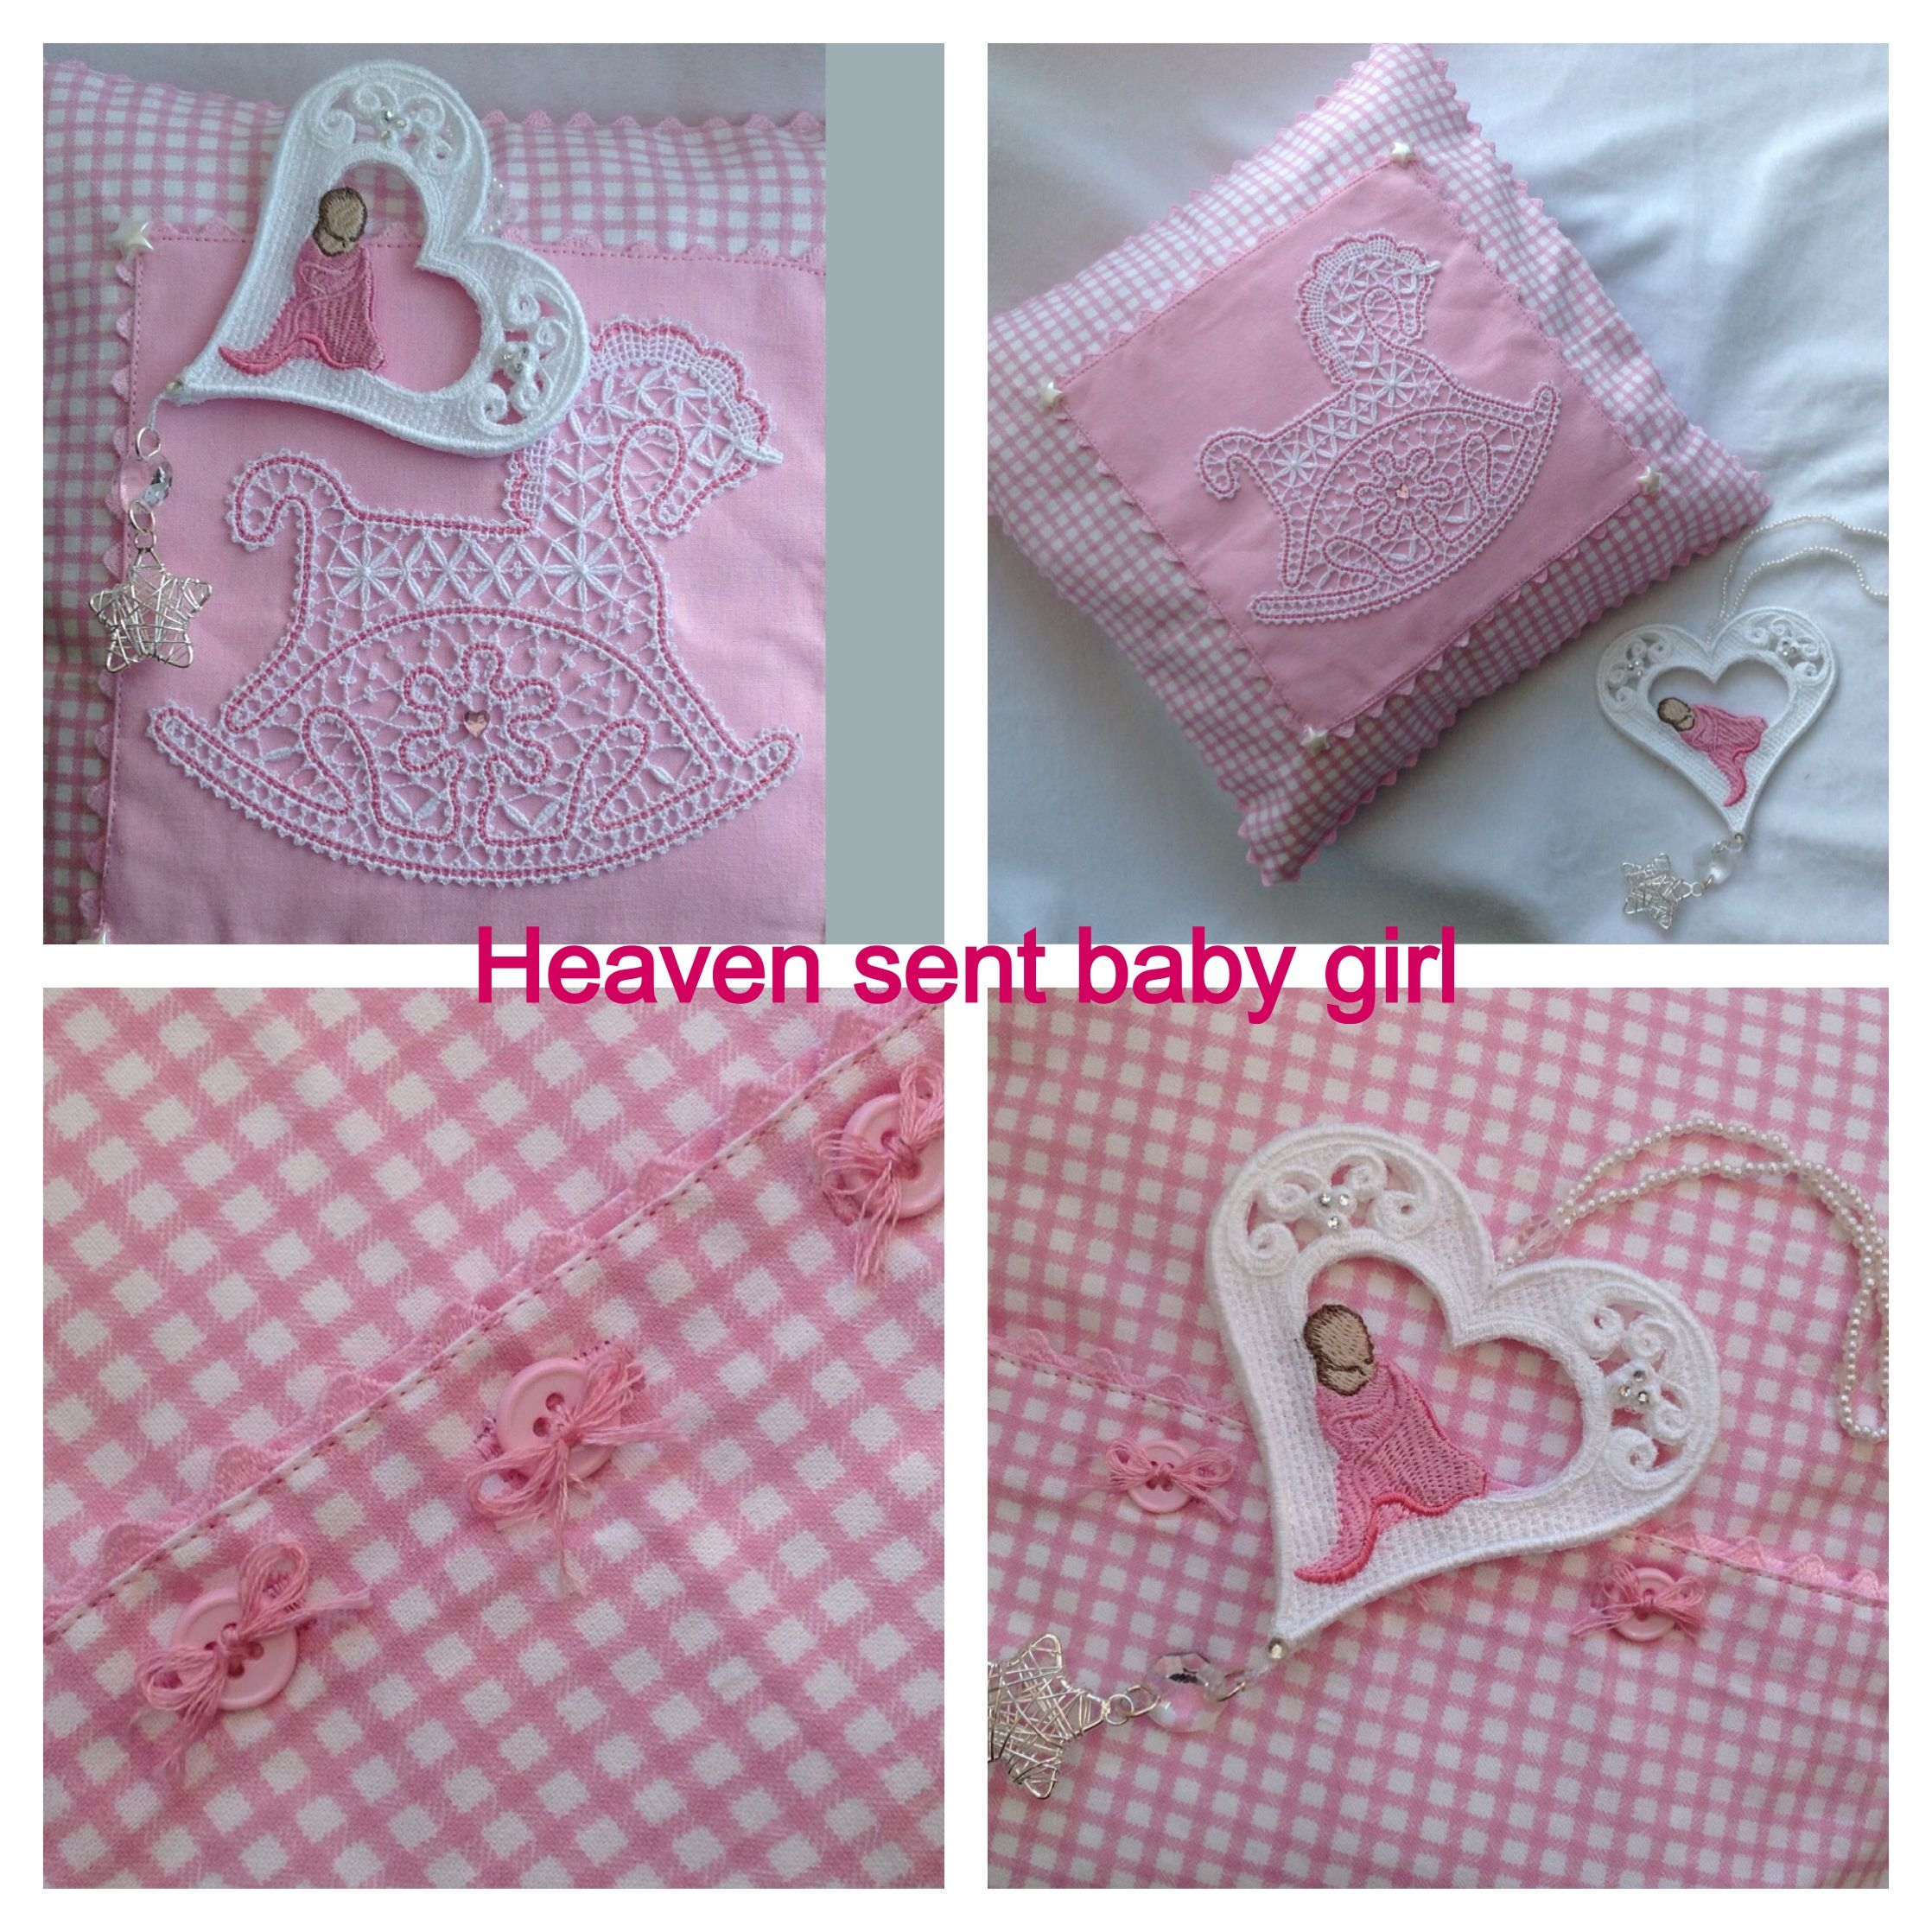 Heaven sent baby girl gifts....   My friends makes   Pinterest